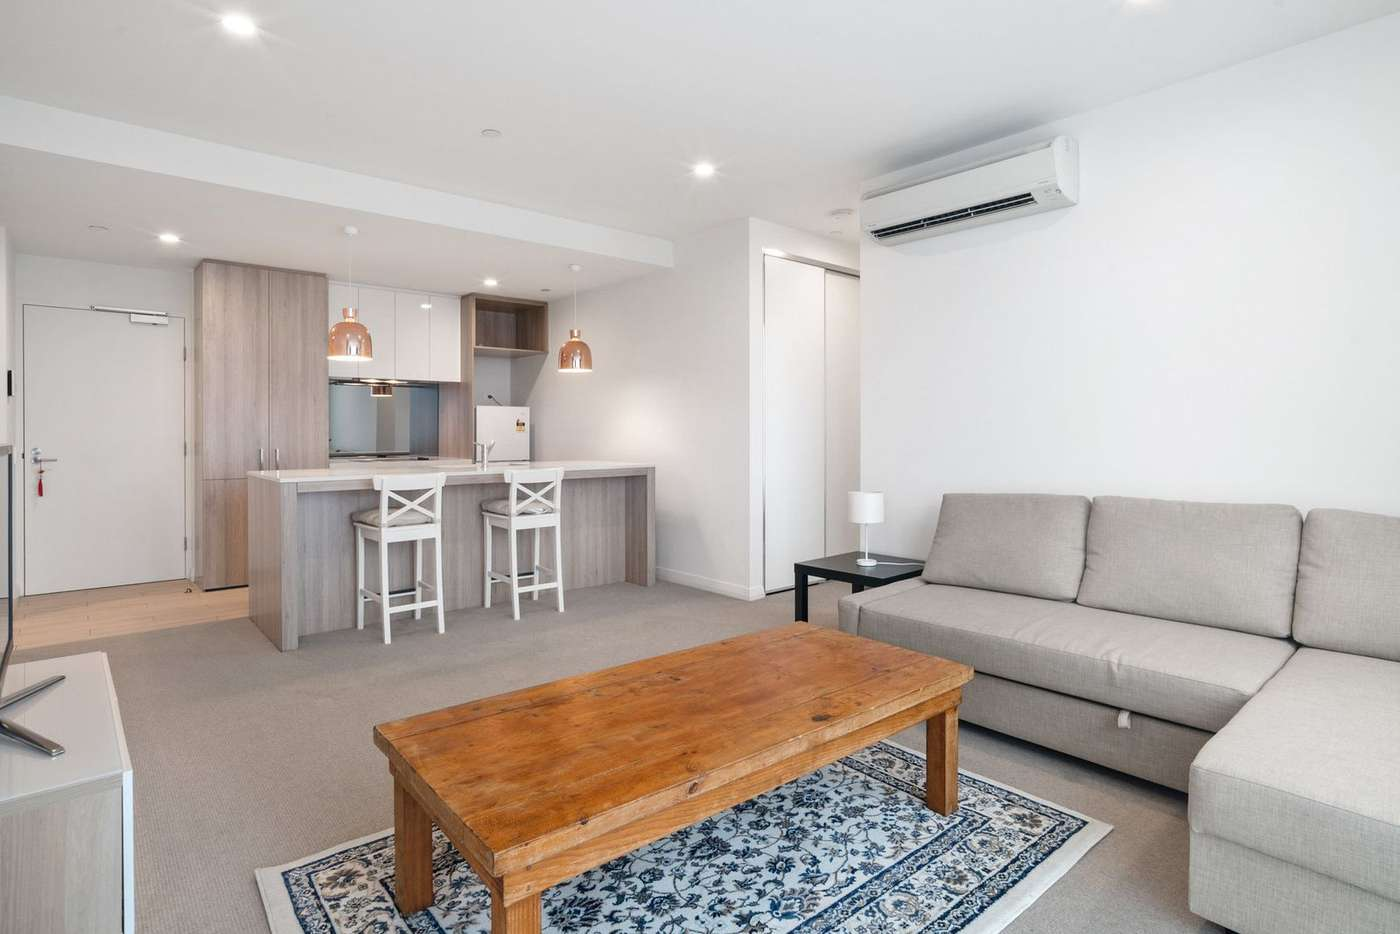 Main view of Homely apartment listing, 206/8 Tassels Place, Innaloo WA 6018